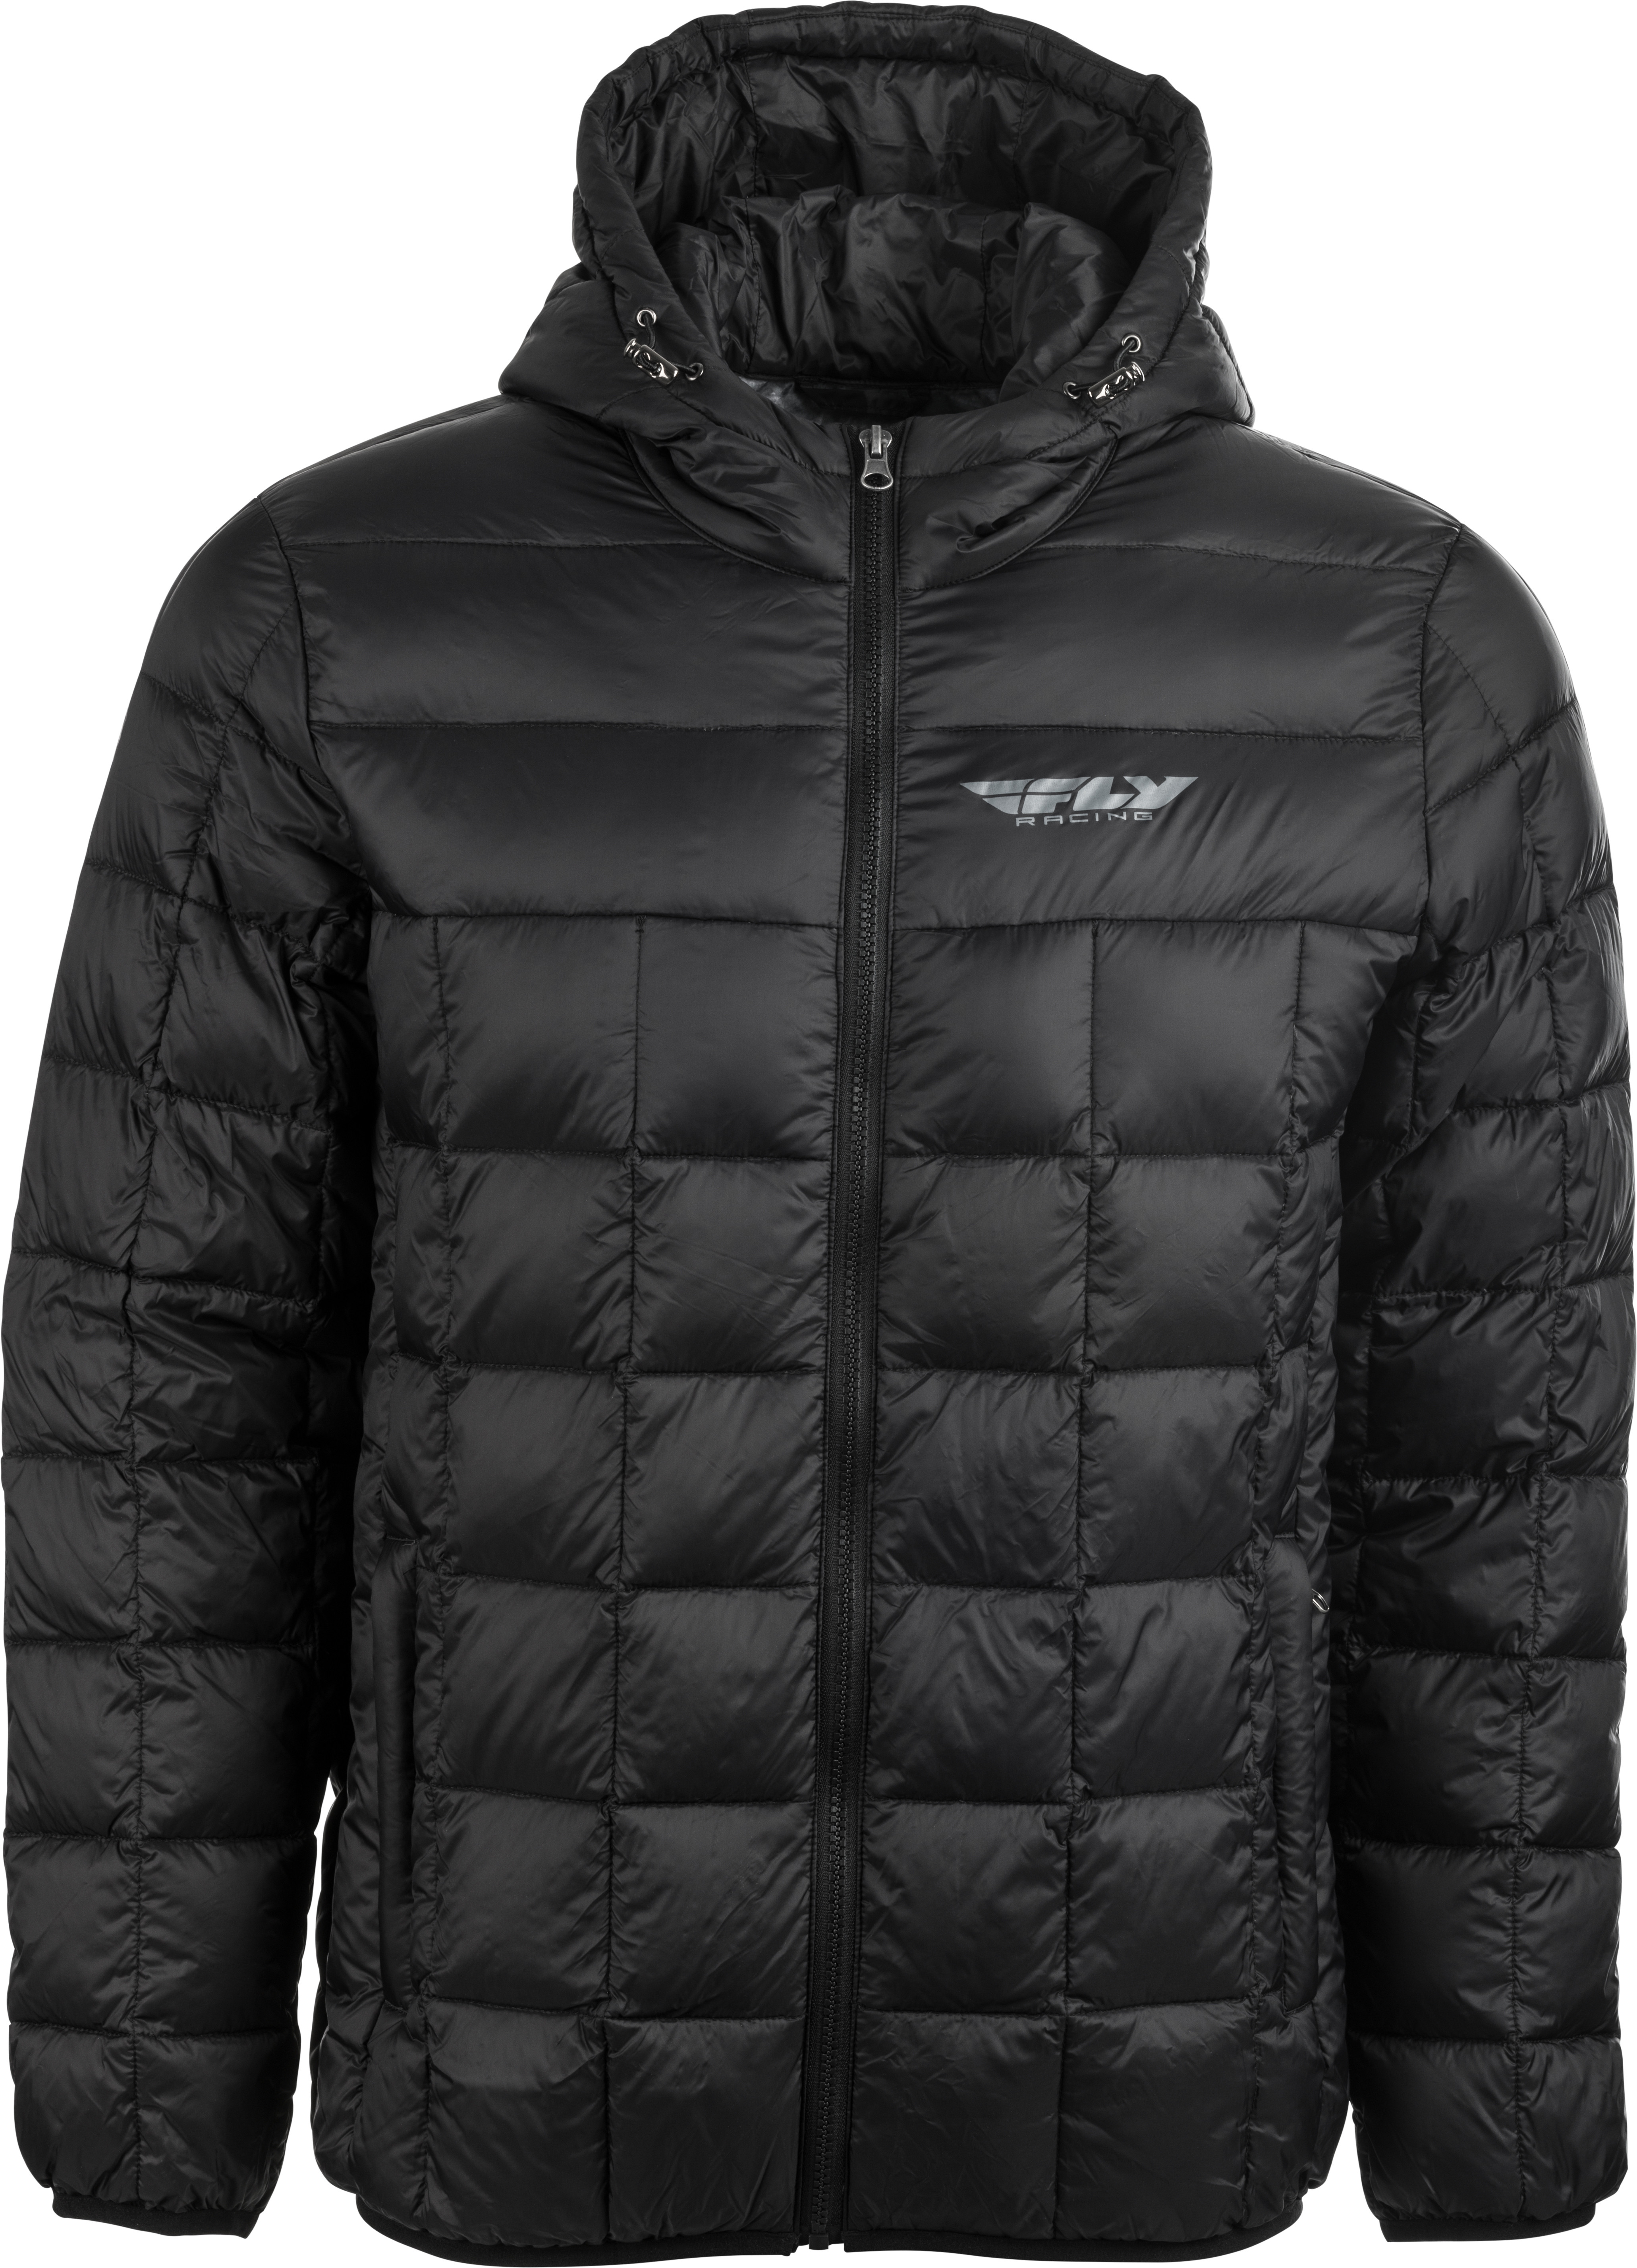 354-6180S Fly Racing Fly Spark Down Jacket Black Sm